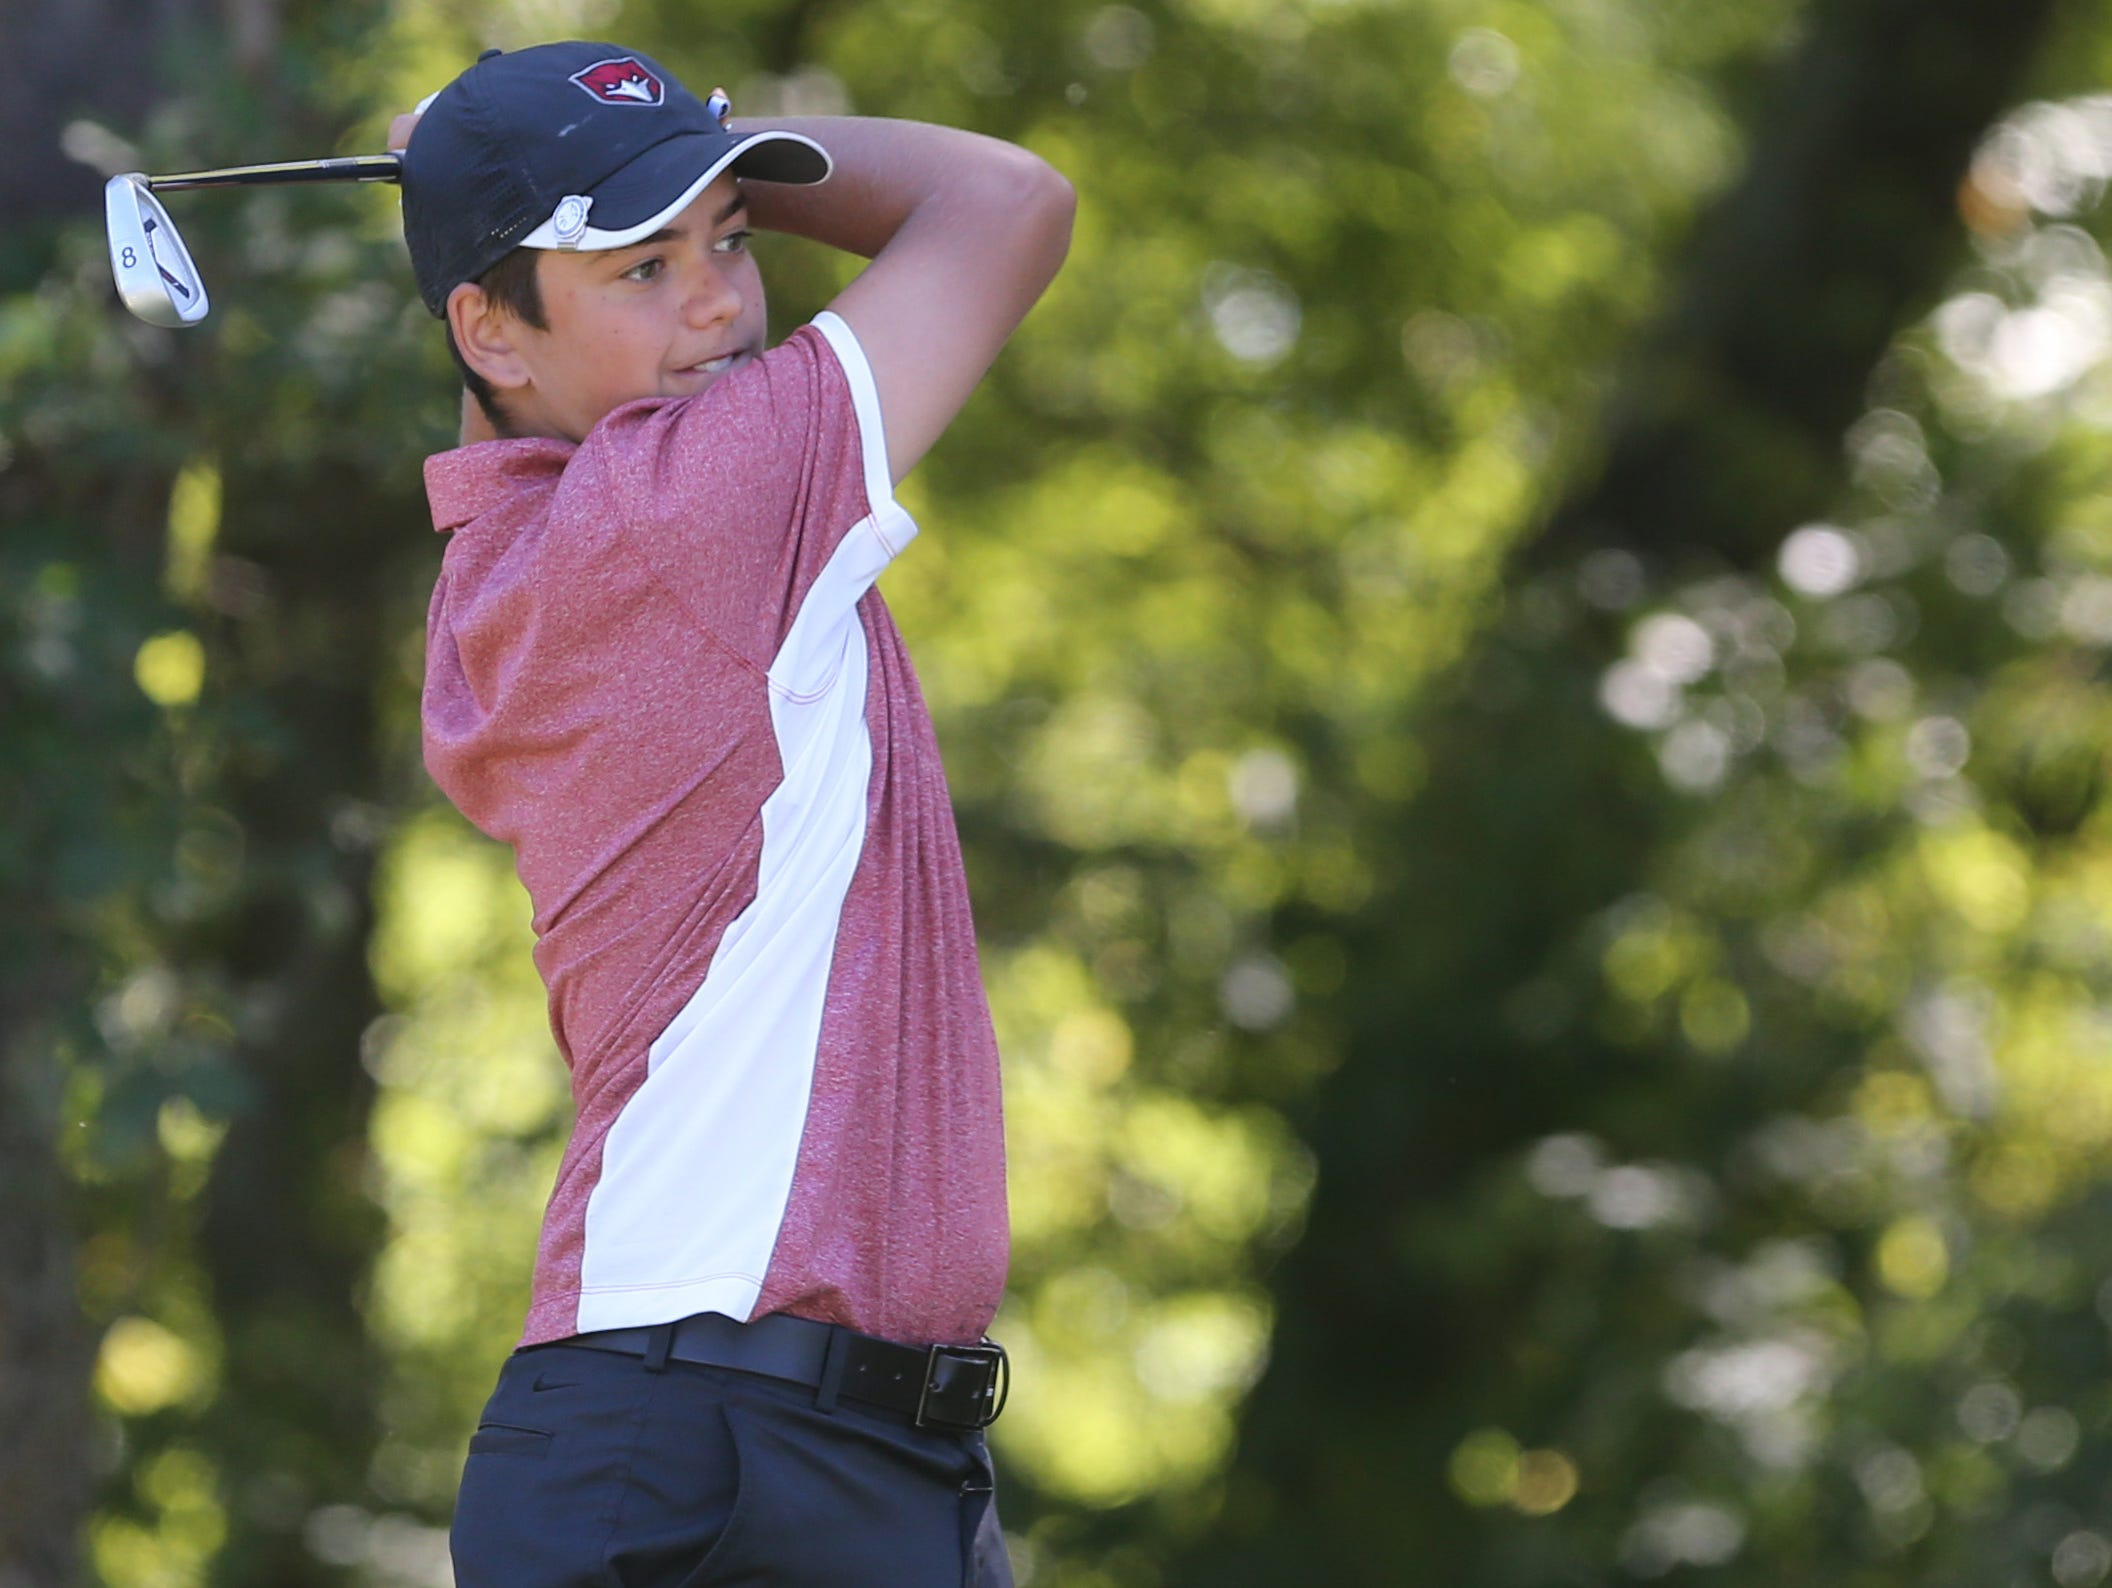 Stewarts Creek's Bryson Hammonds watches his tee shot on No. 17 at Smyrna Municipal Golf Course. Hammonds shot a 77 in Monday's District 7-AAA tournament.